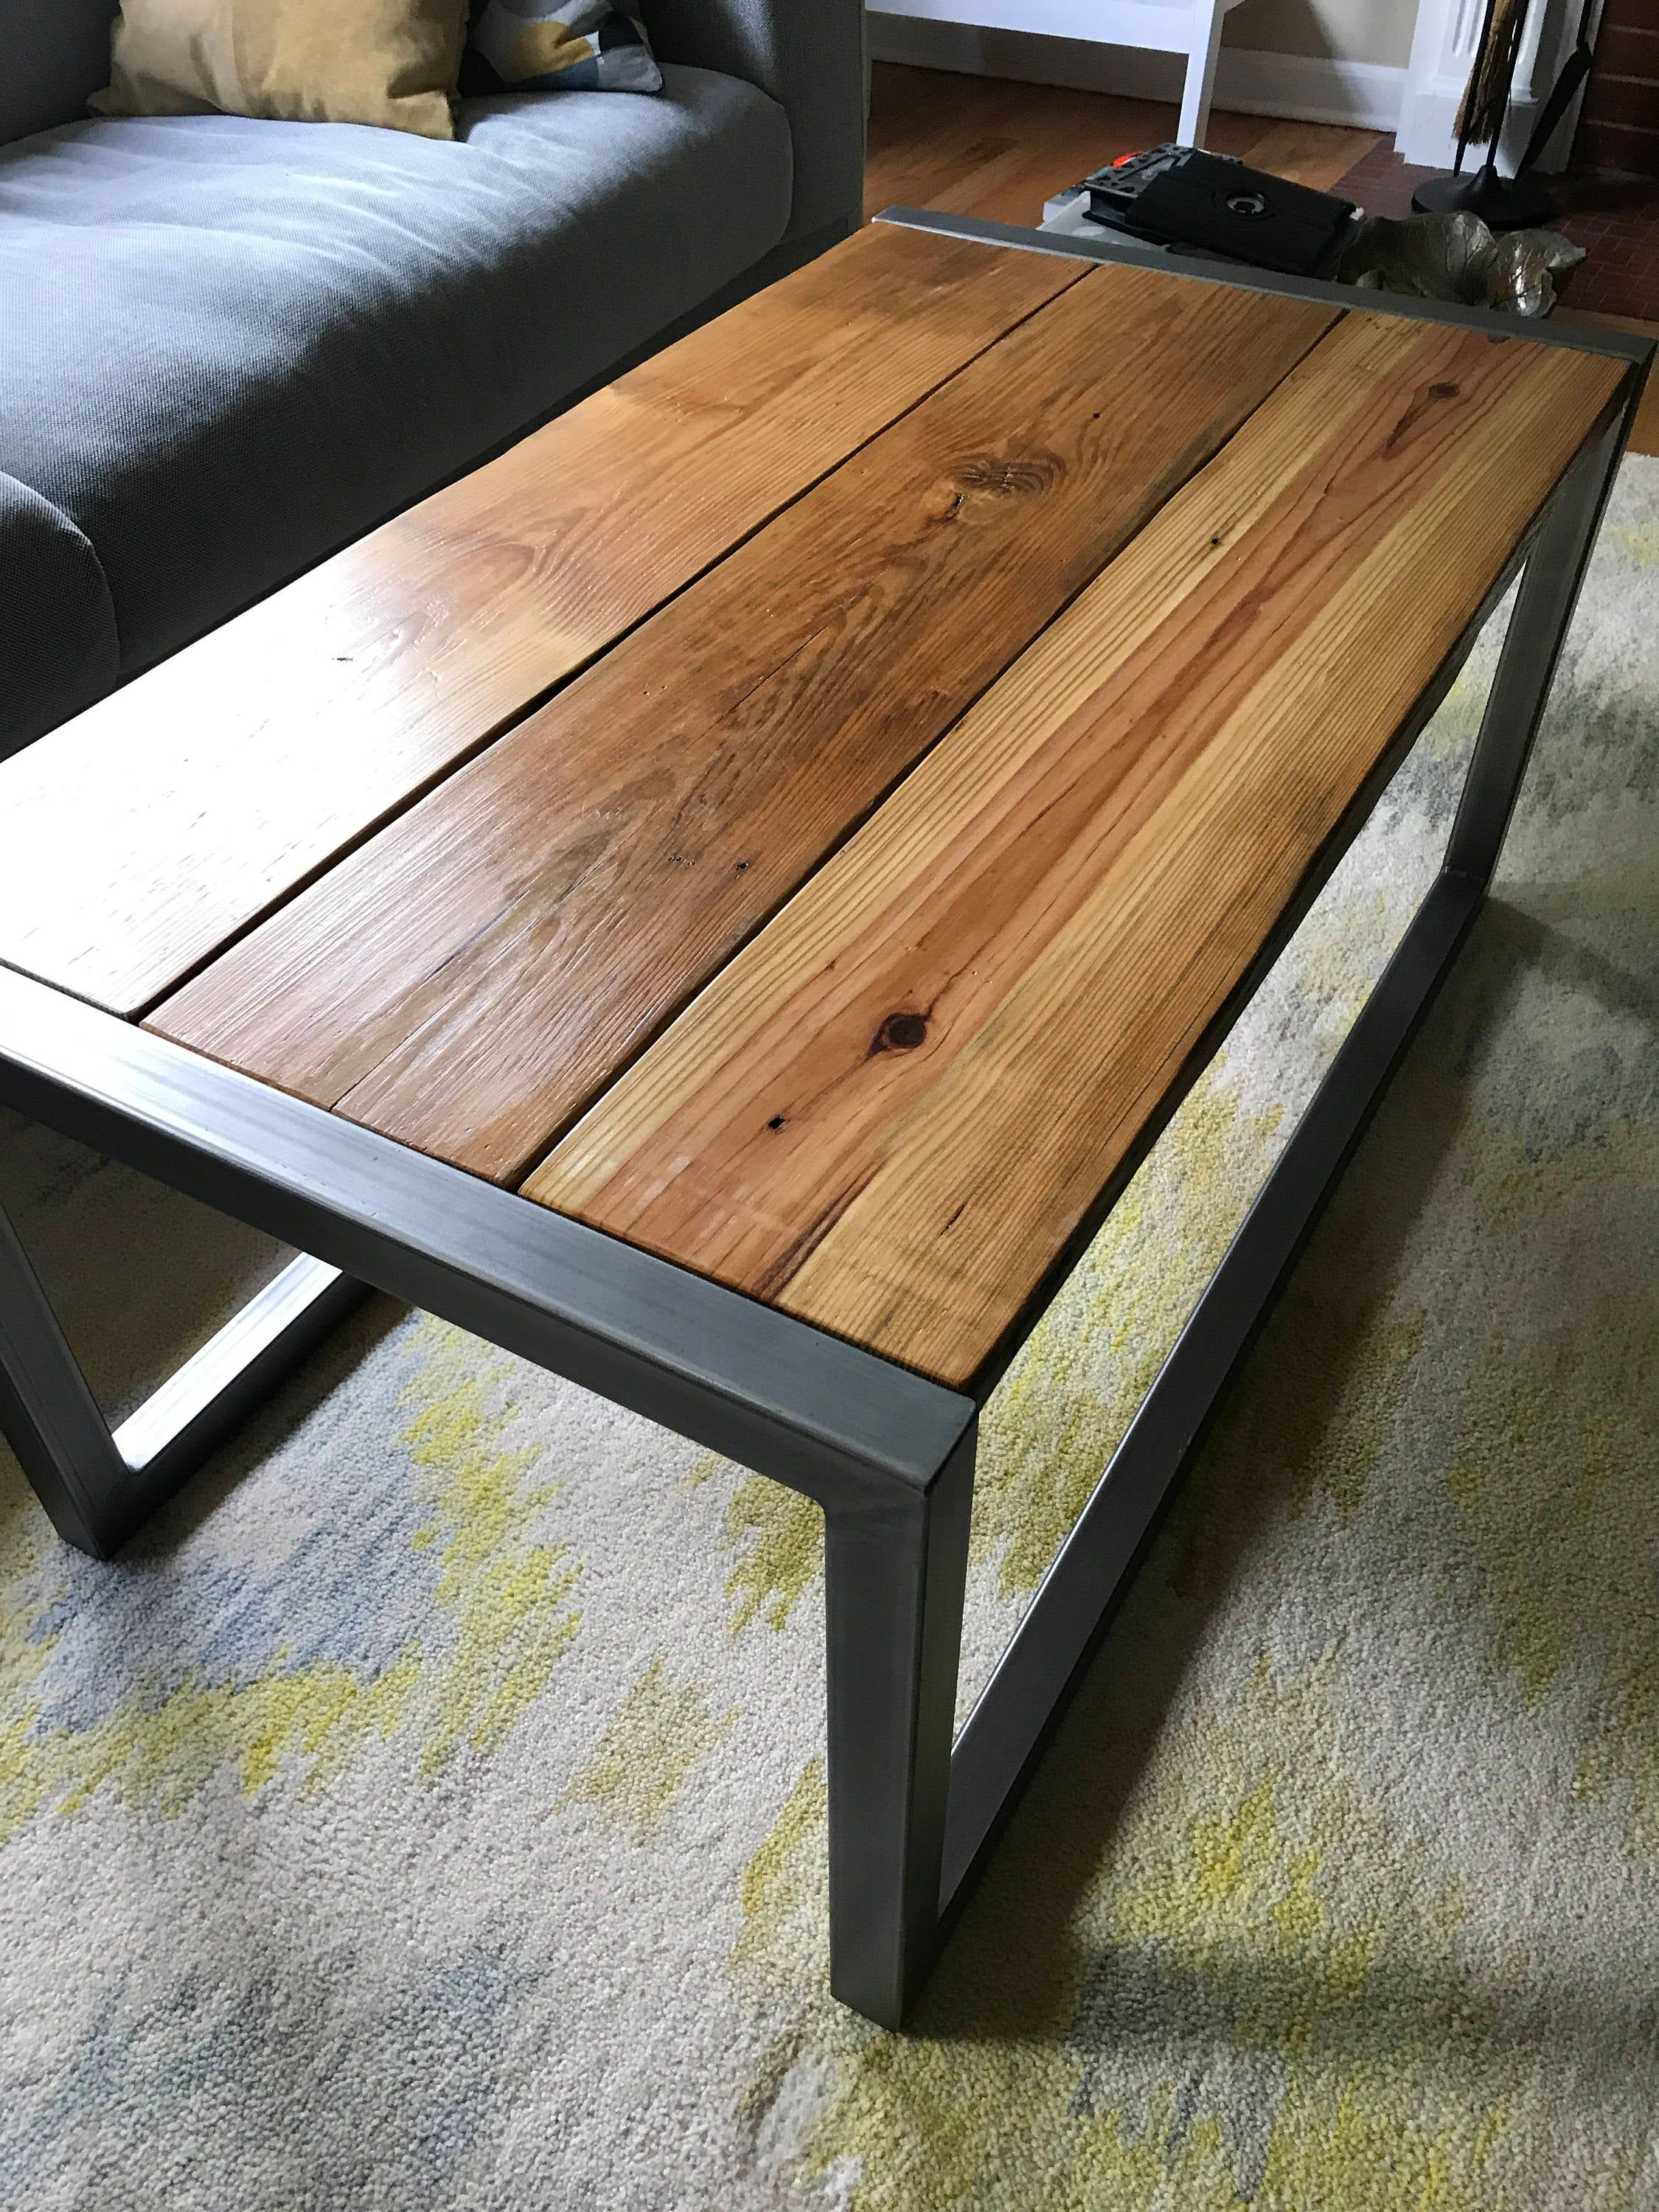 Modern And Rustic Reclaimed Wood Coffee Table Etsy Rustic Coffee Tables Reclaimed Wood Coffee Table Wood Coffee Table Rustic